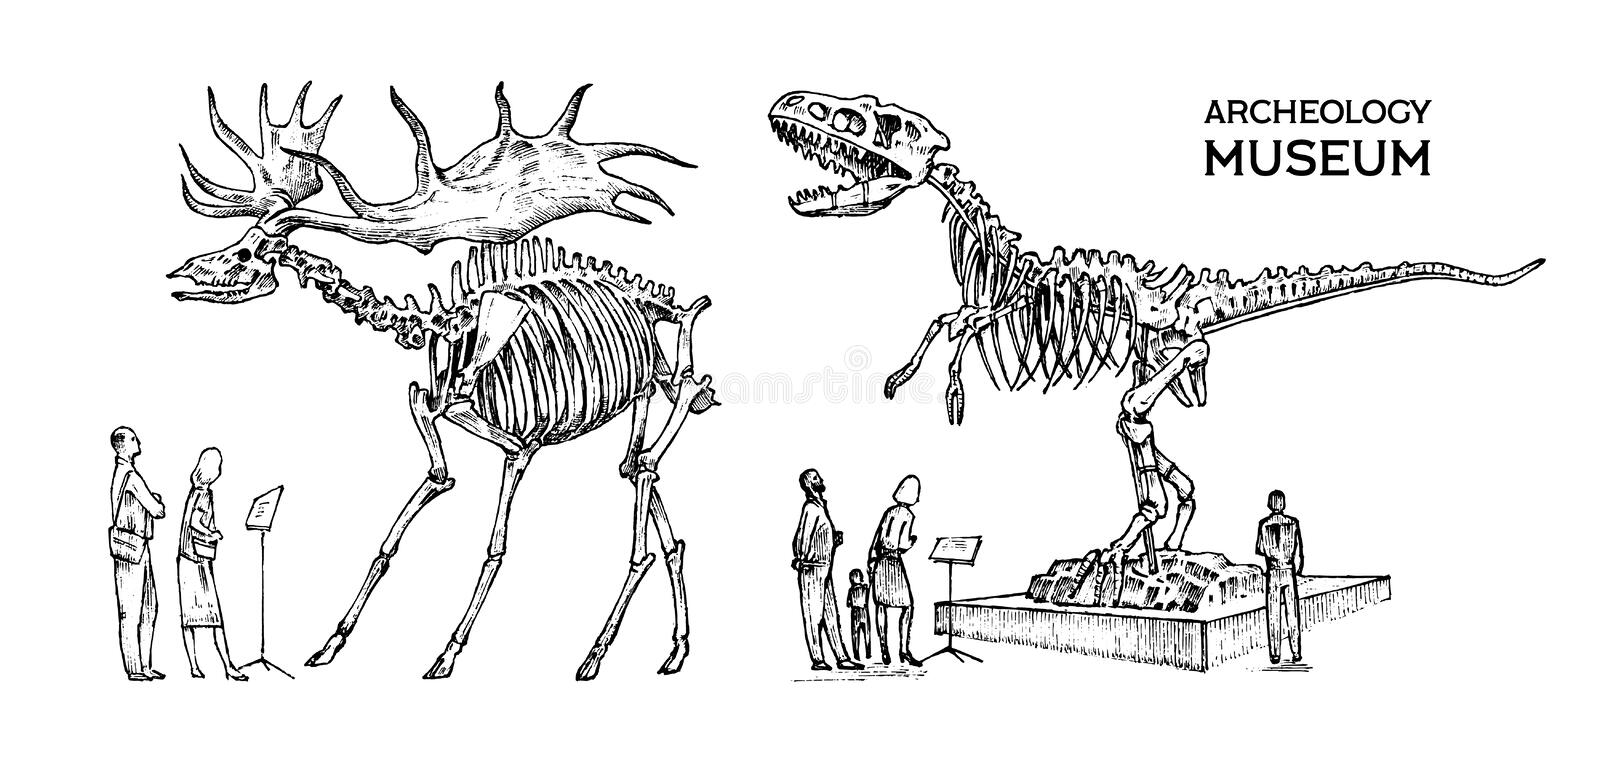 Vintage Archaeological Museum. Visitors are looking at the exhibit. Historical skeleton of an extinct animal dinosaur vector illustration